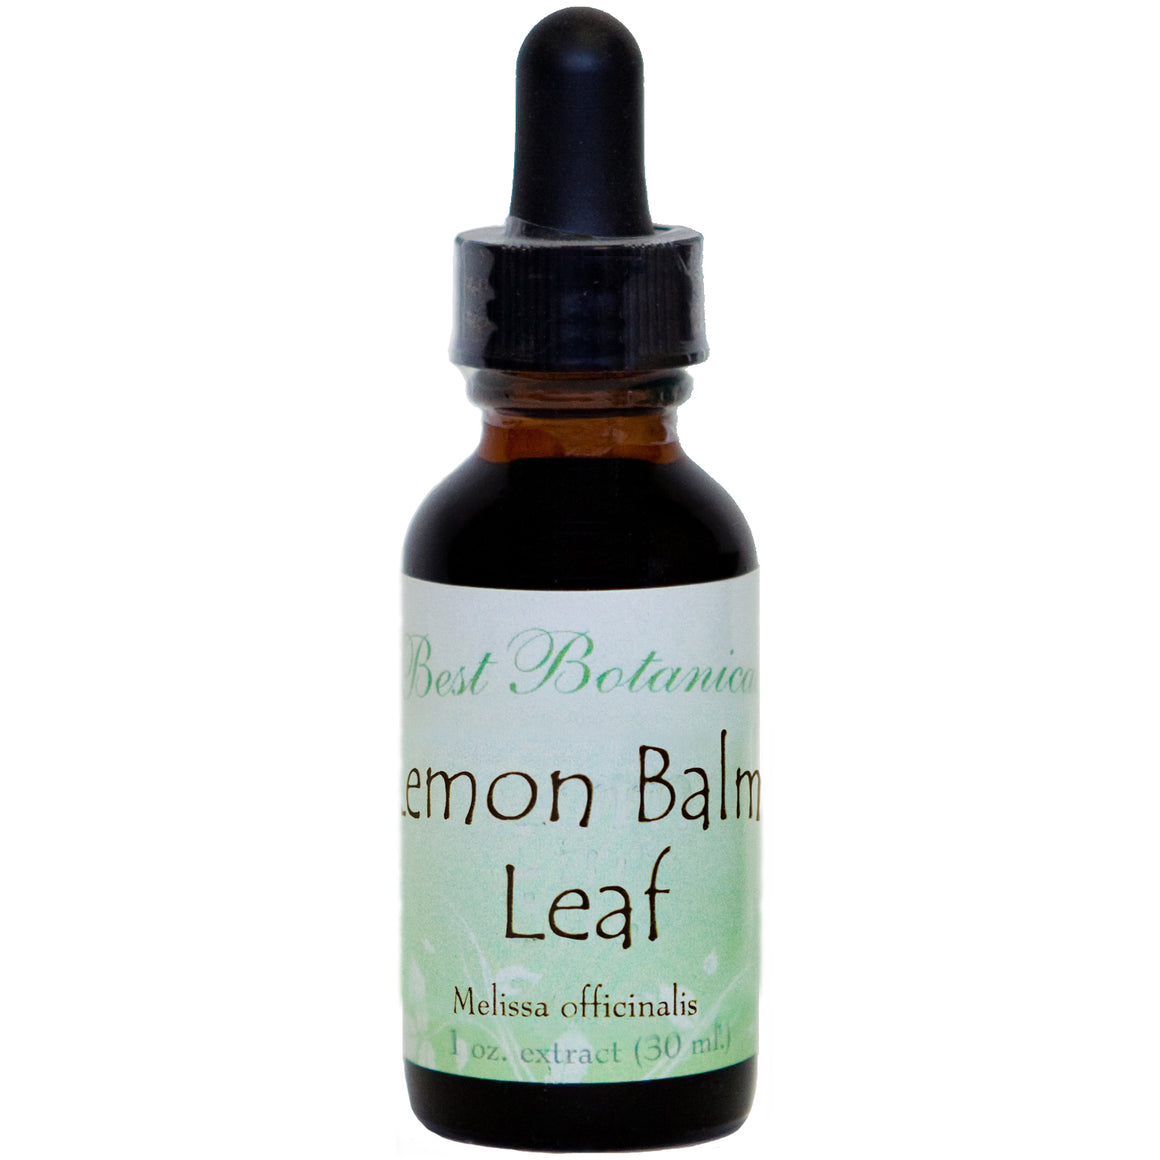 Lemon Balm Leaf Extract